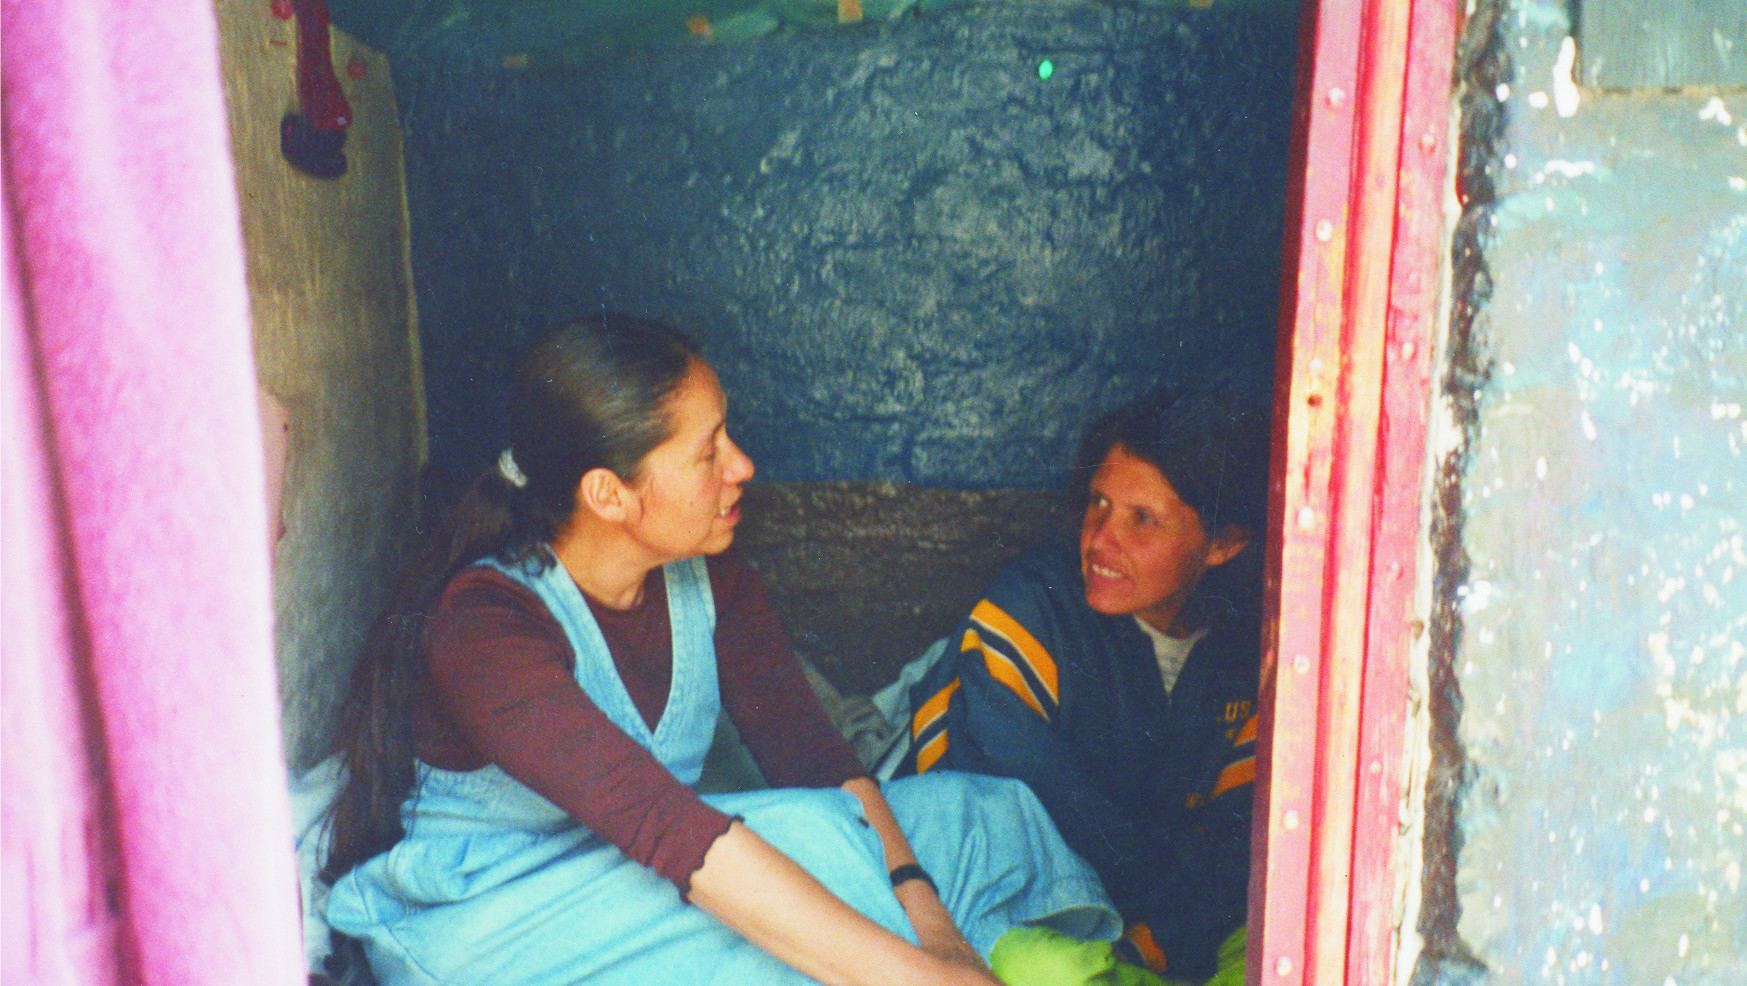 In 1973, Sisters in Mexico started a new form of ministry called Pastoral Popular. Sisters sought out, lived with, and ministered to the underserved, focusing on daily contact with the people at their work and in their homes. Here, Sr. Ofelia Lozano visits a parishioner in Mexico City.